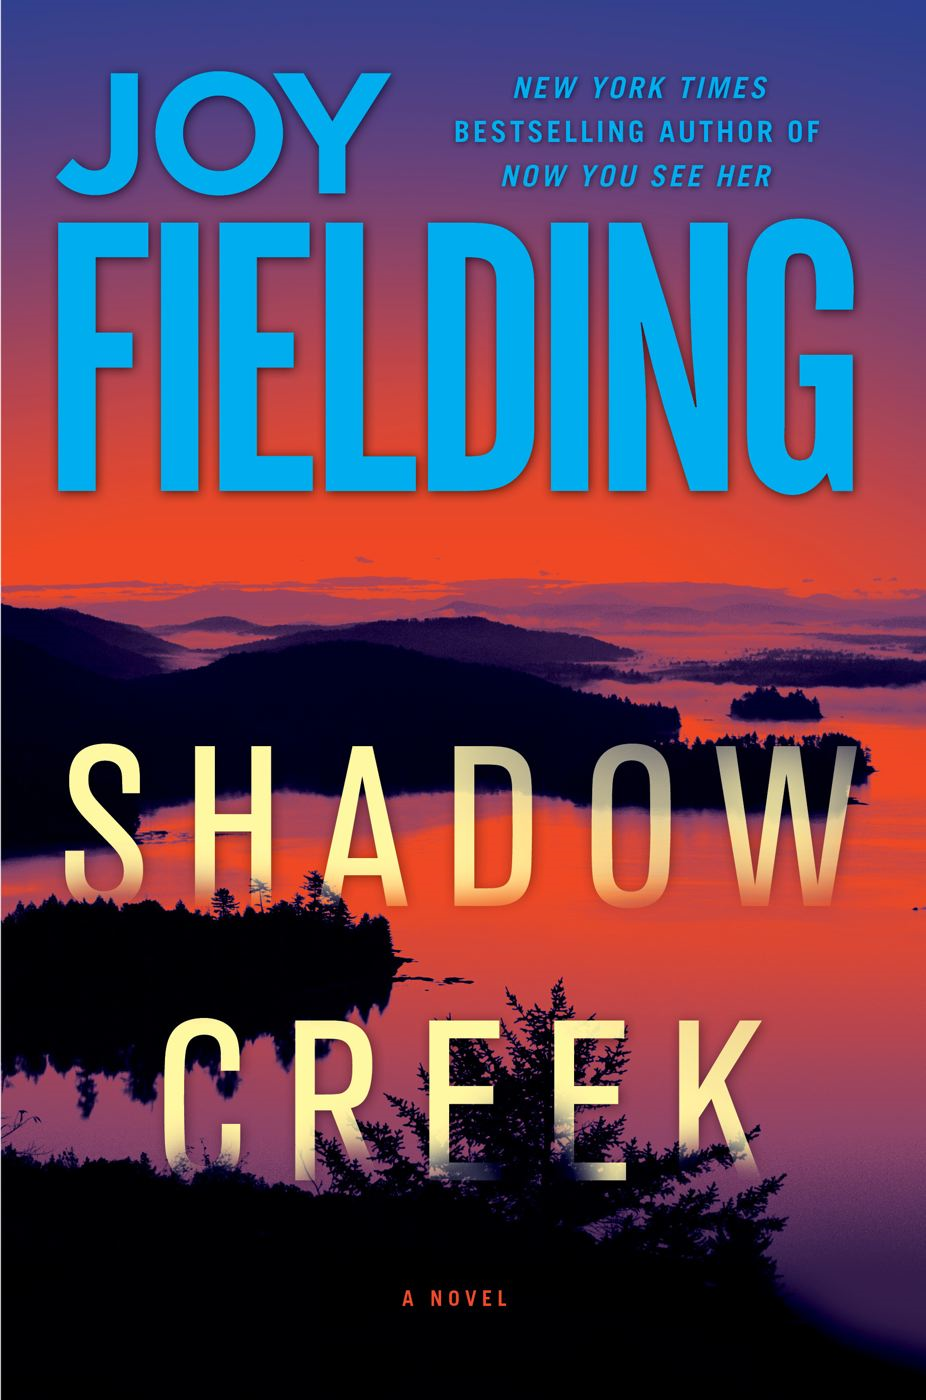 Shadow Creek By: Joy Fielding